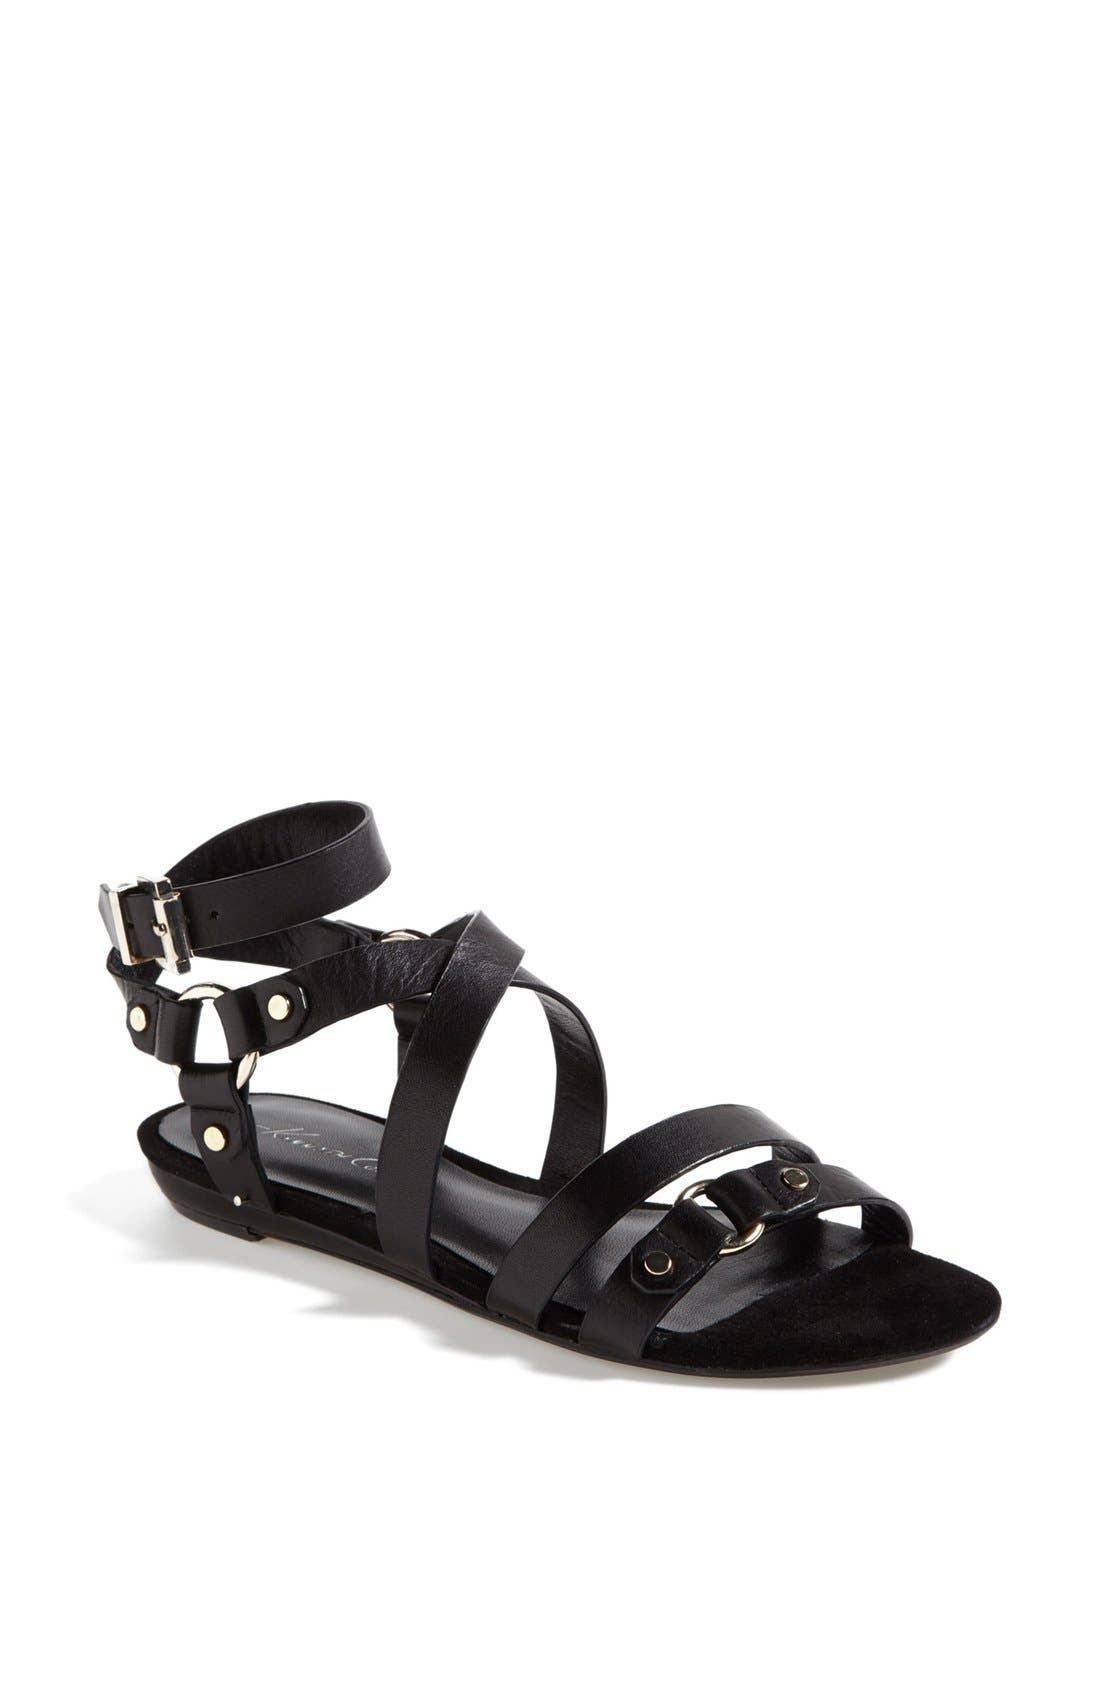 Main Image - Kenneth Cole New York 'Exchange' Sandal